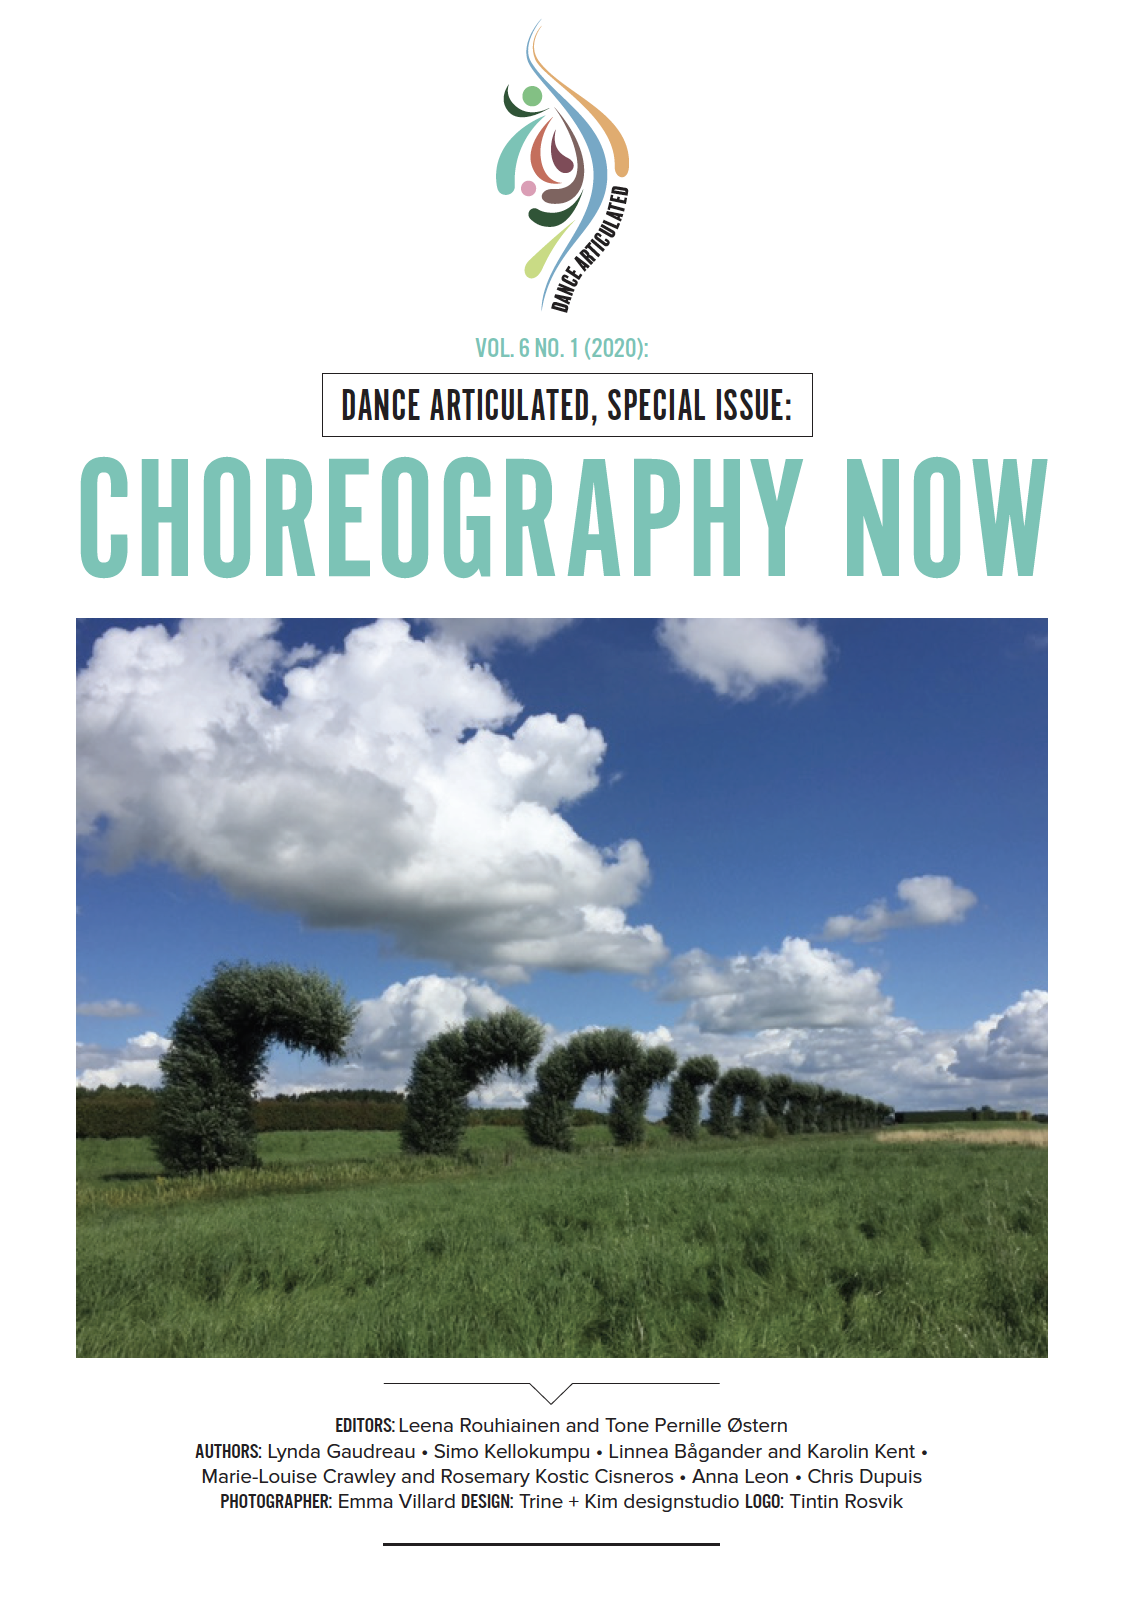 View Vol. 6 No. 1 (2020): Dance Articulated, Special Issue: CHOREOGRAPHY NOW